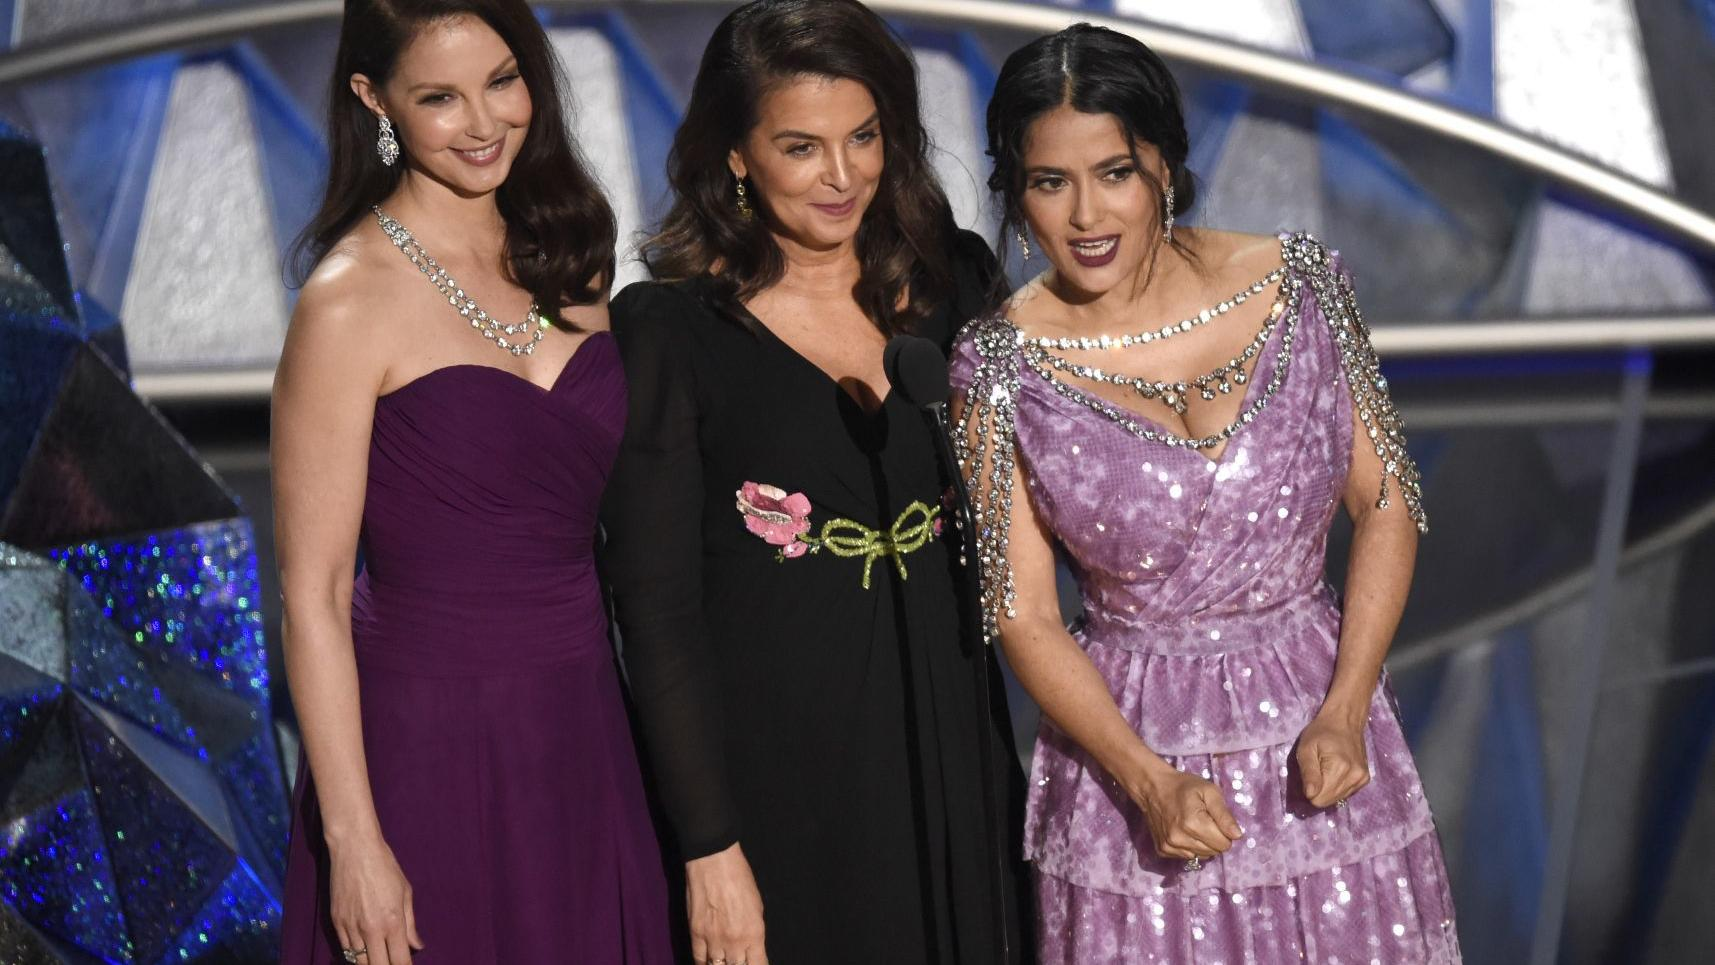 Oscar moments: A whiff of change, of many kinds, at post-Weinstein Academy Awards